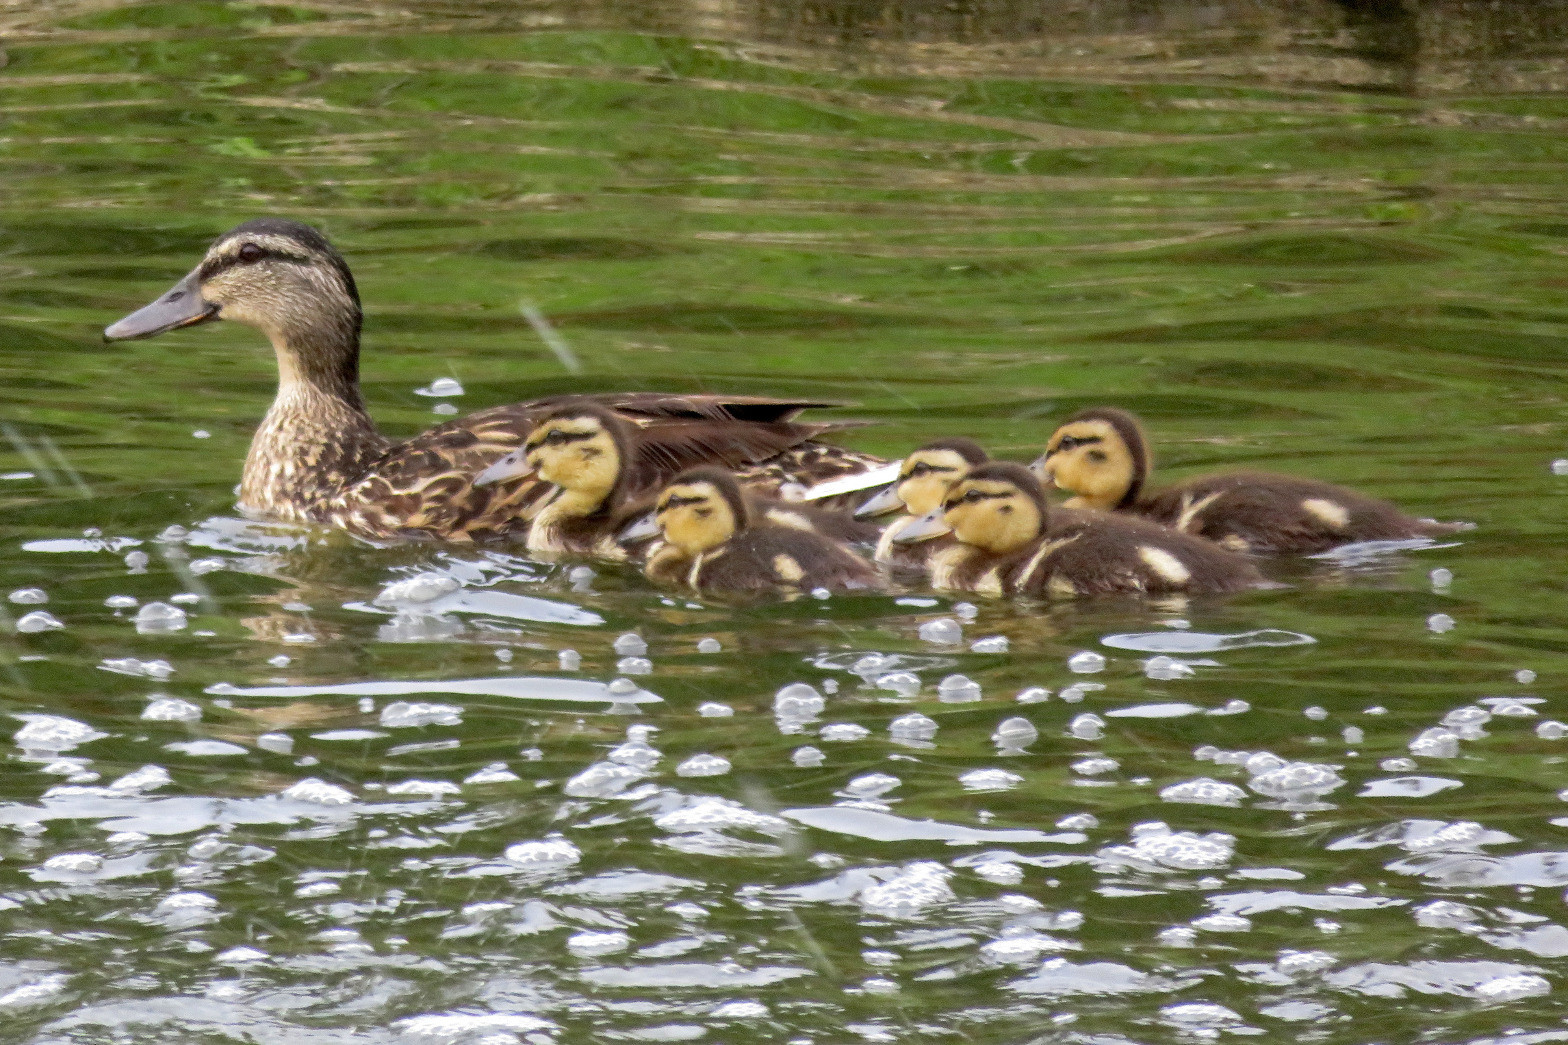 A mother duck and her ducklings